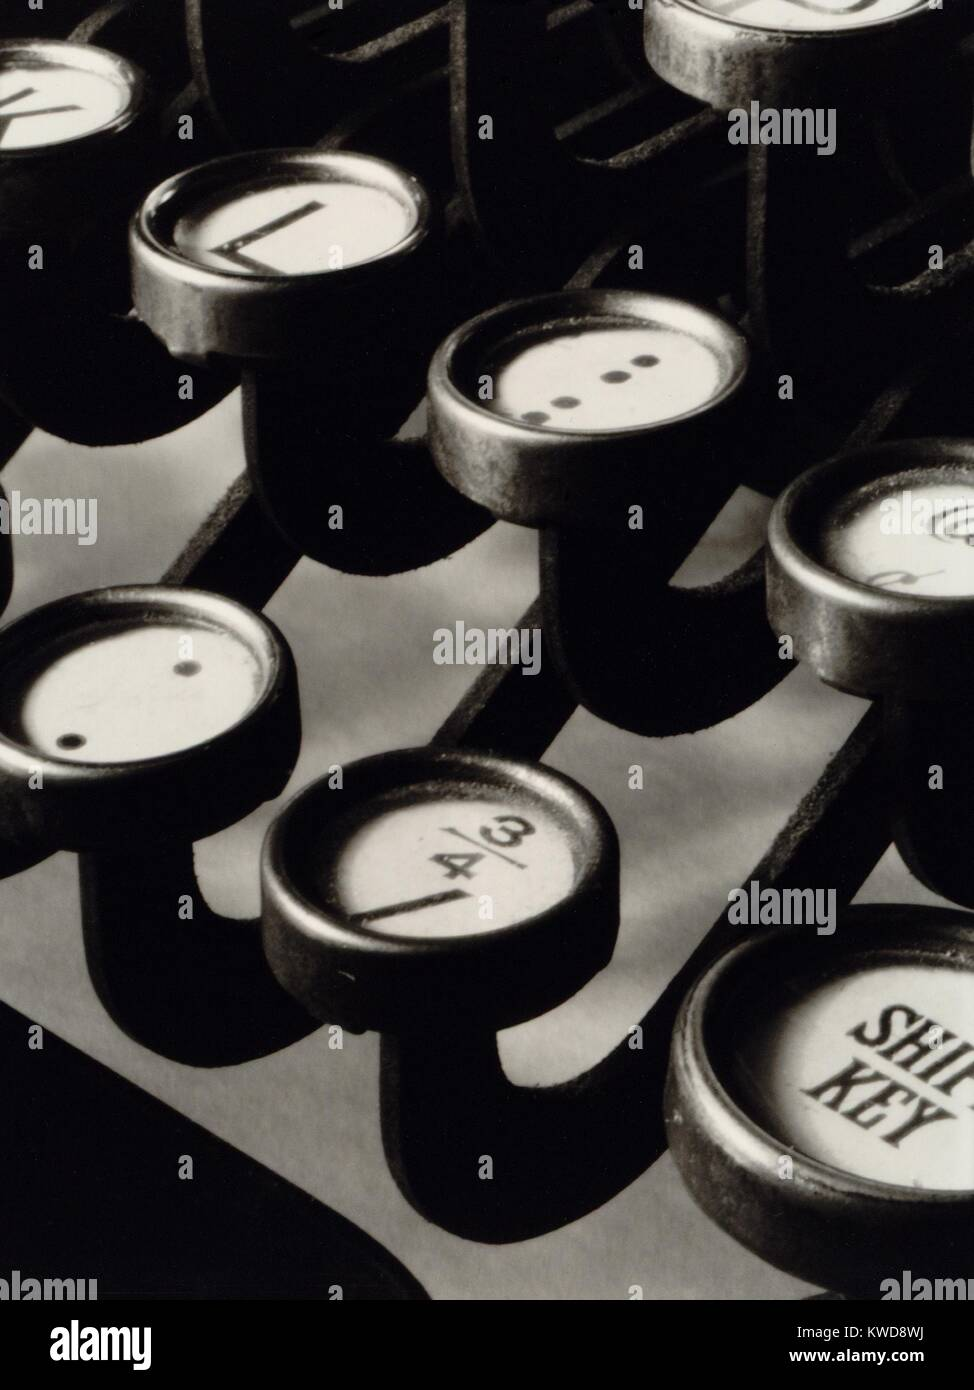 close up photograph of keys of a manual typewriter by ralph steiner rh alamy com Up Close and Personal Photography Up Close and Personal Photography